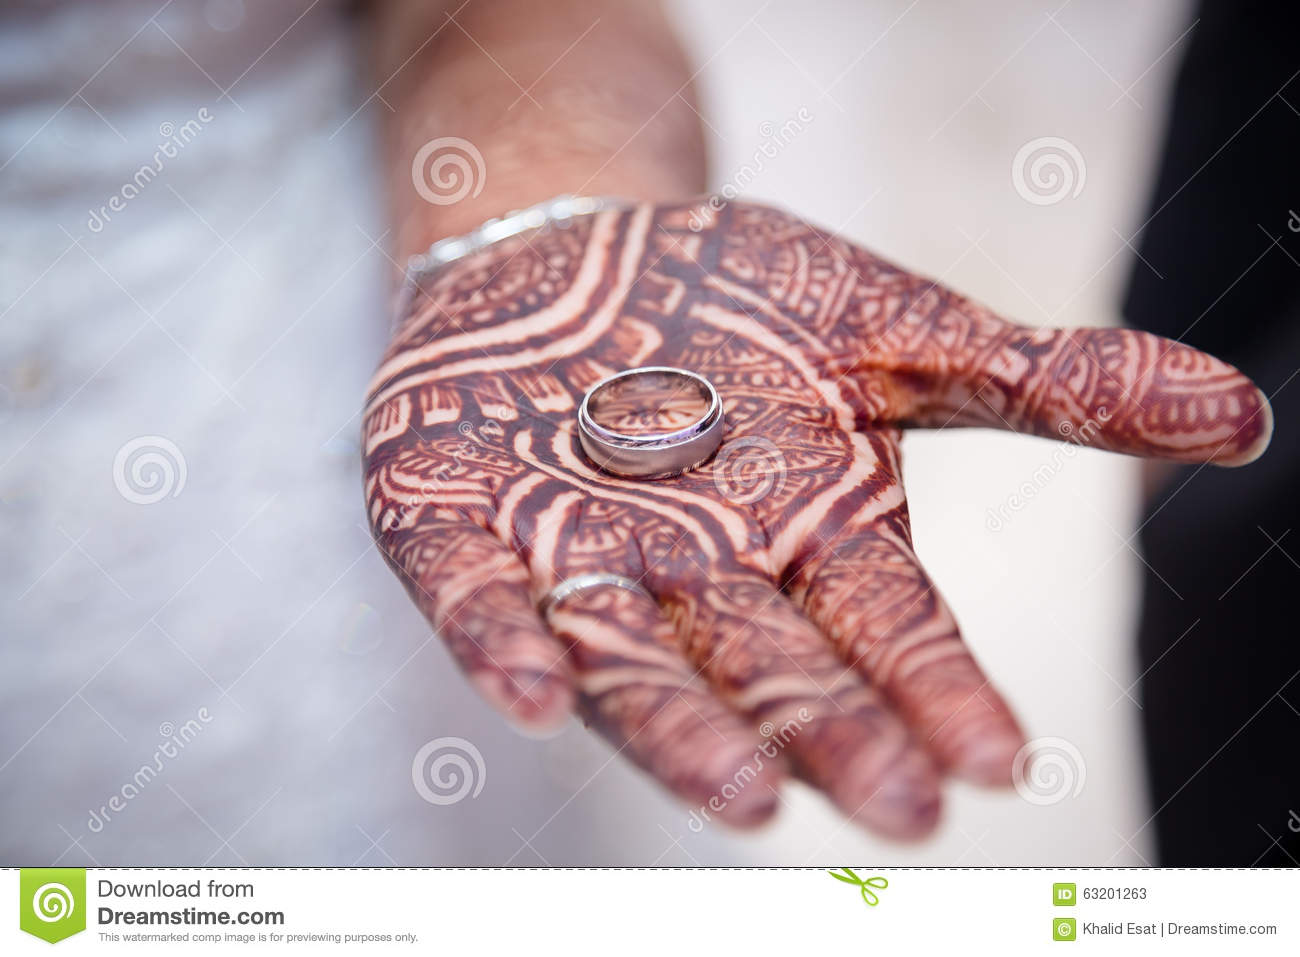 The grooms ring stock image. Image of rings, henna, indian - 63201263